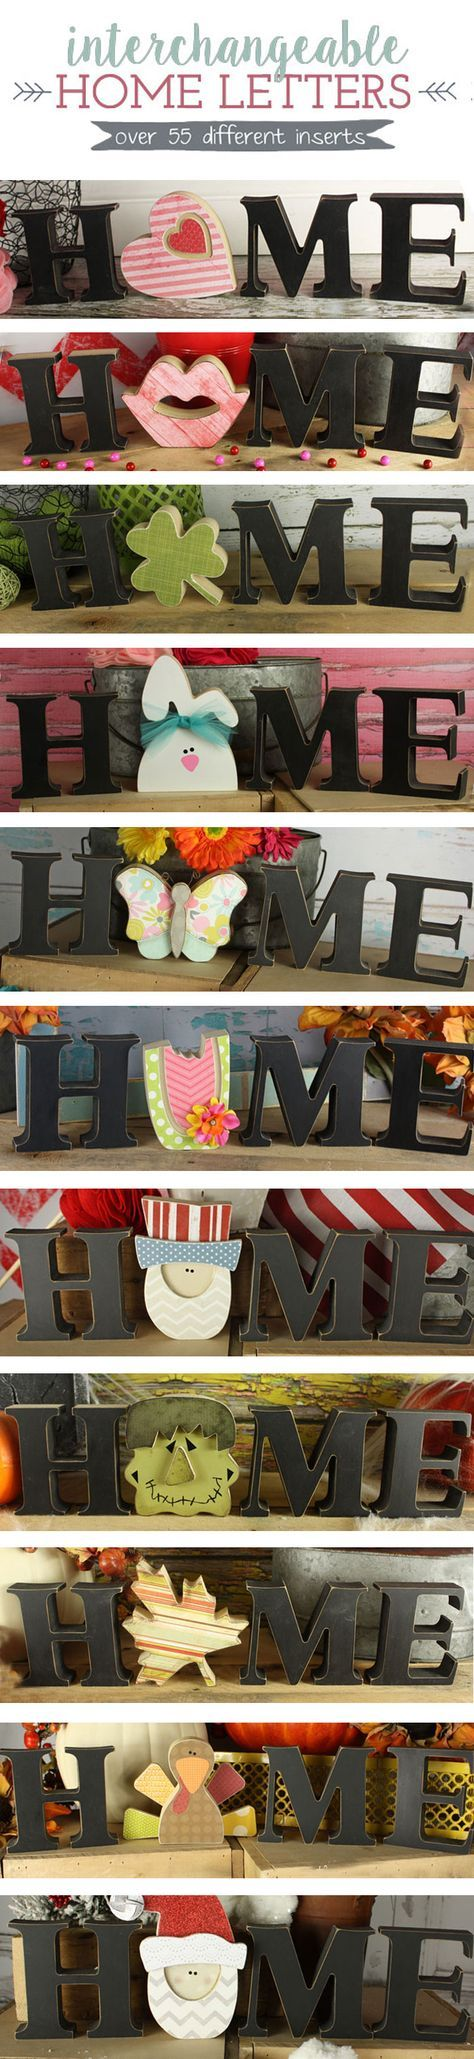 """Interchangeable Home Letters. Over 55 different inserts for the letter """"O"""". Swap it out for each holiday/season. So Cute!! Get your craft on :)"""